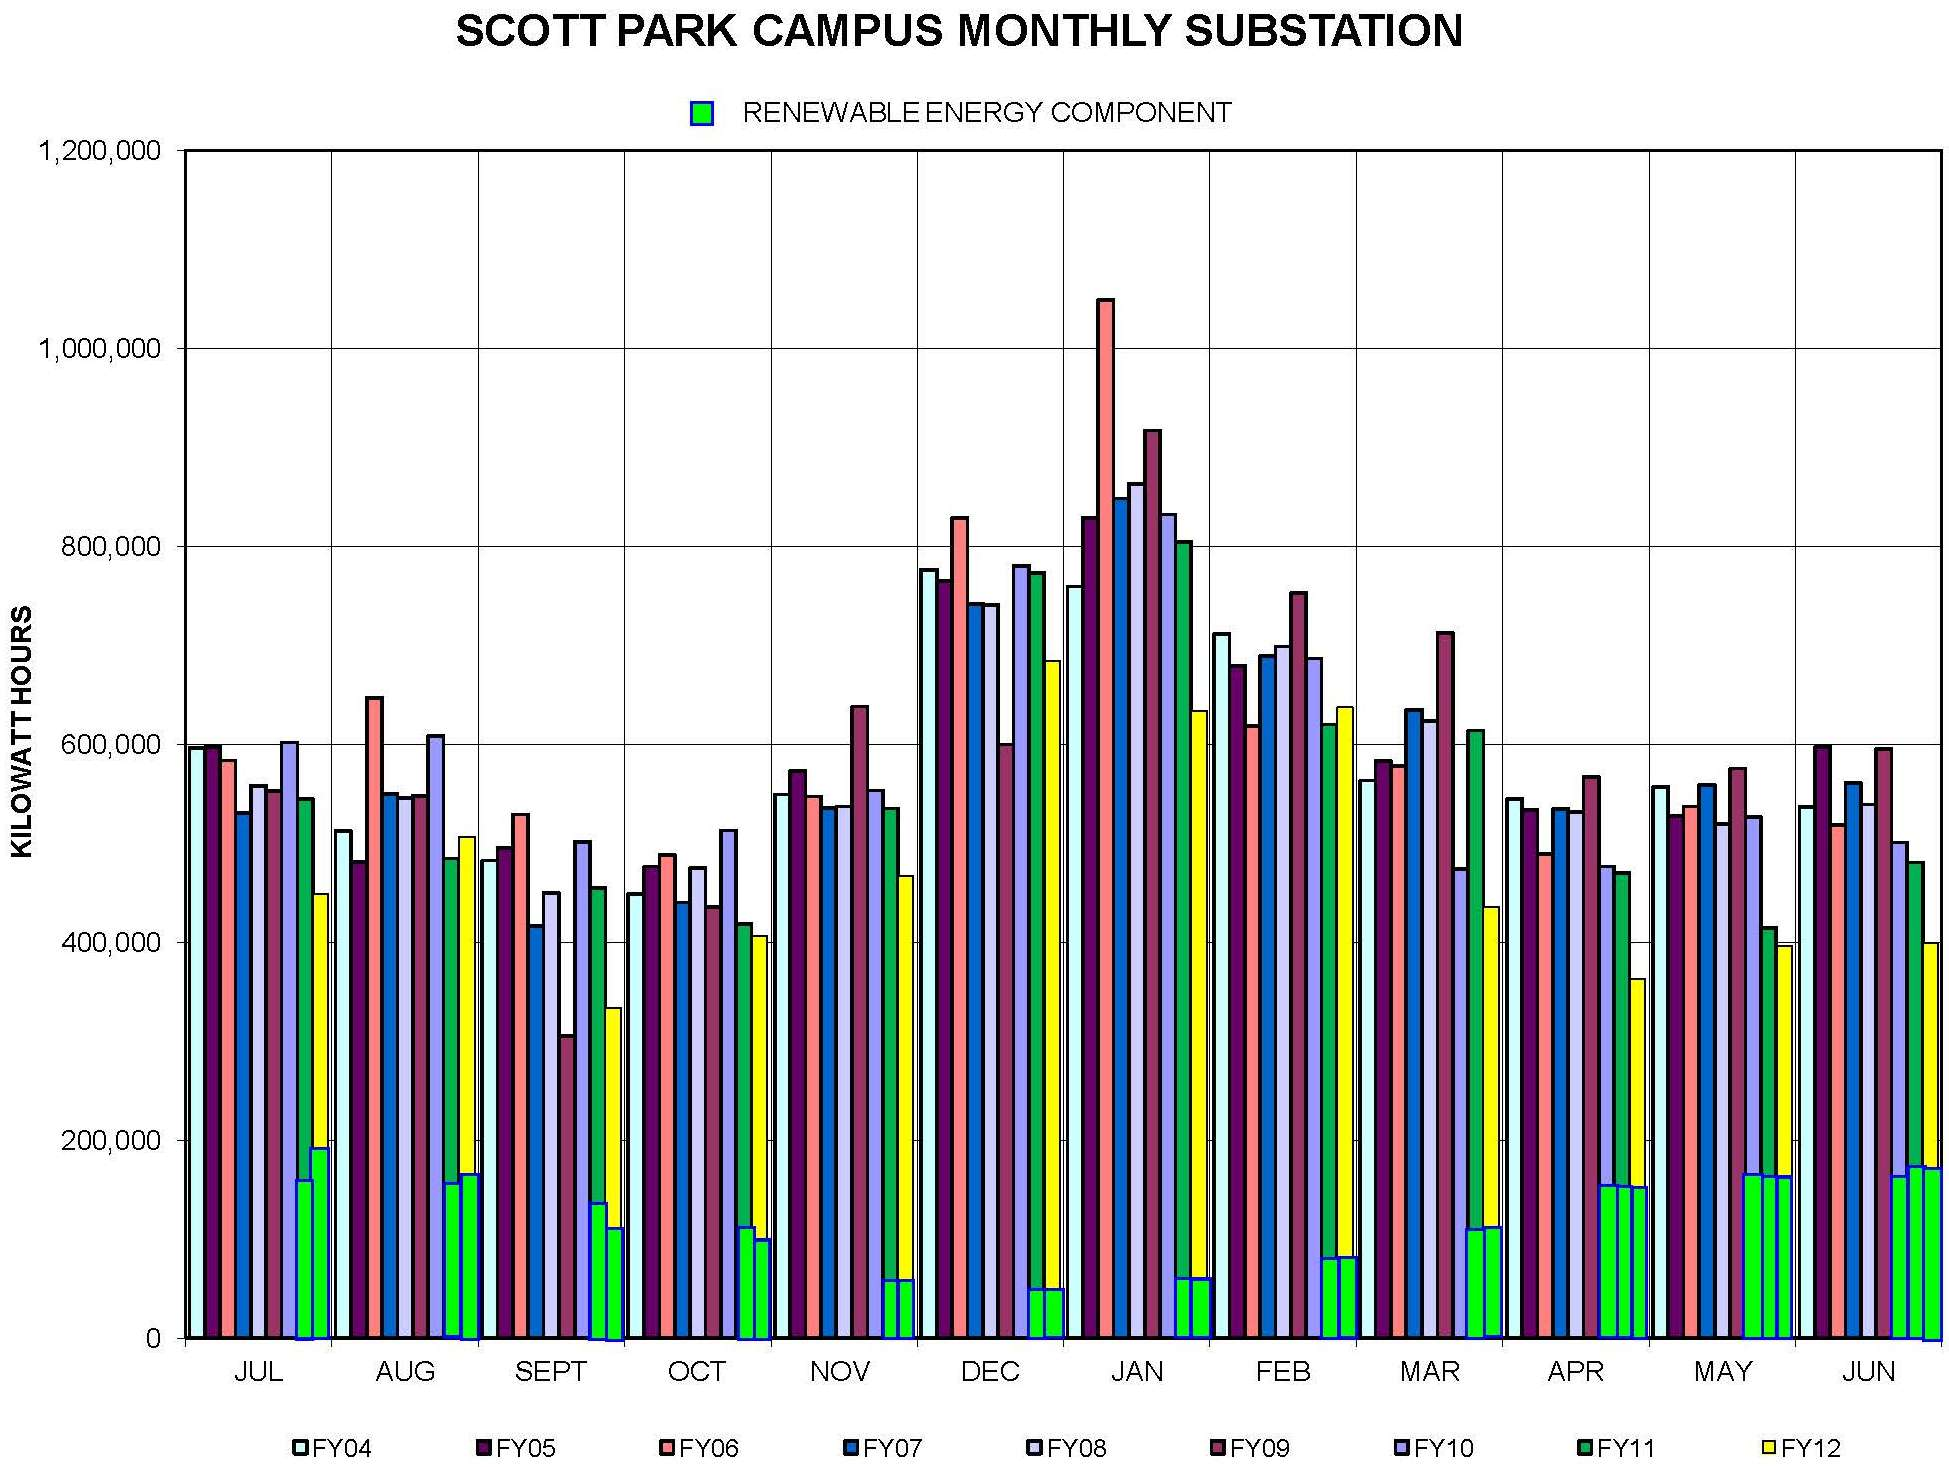 Scott Park Campus Substation Usage from FY 2009 - 2012